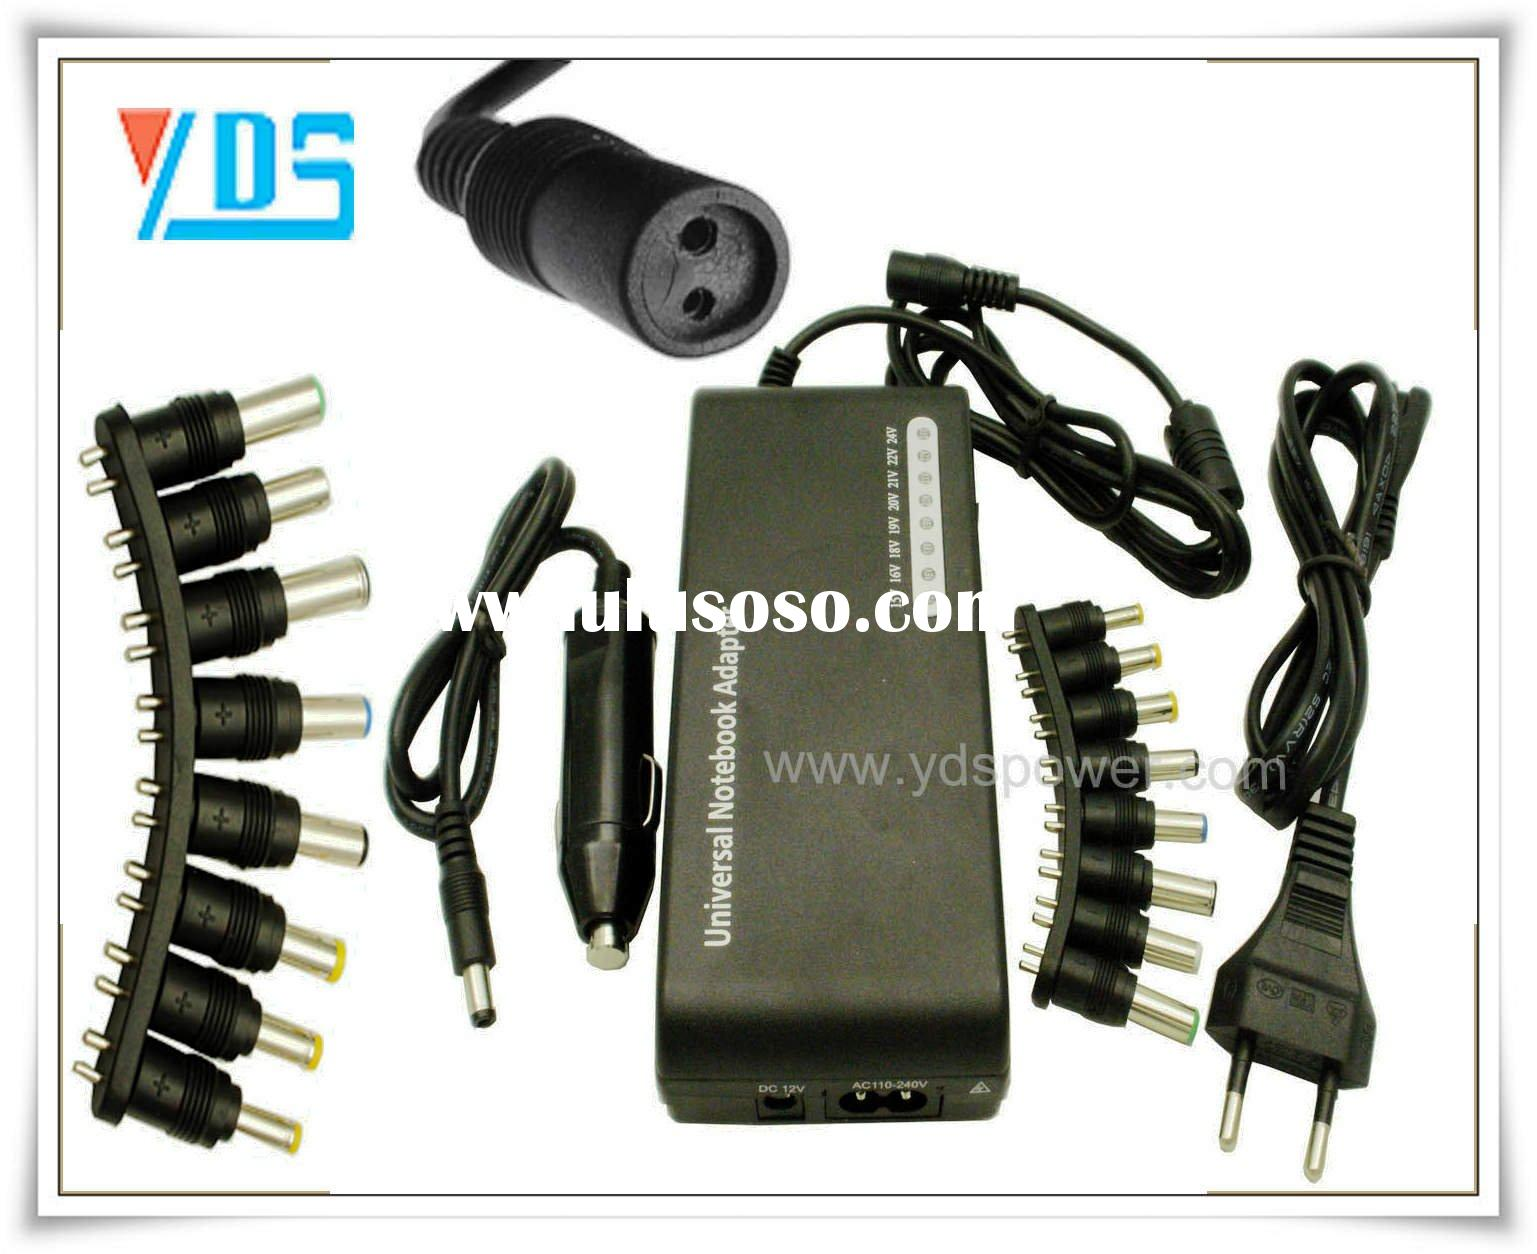 Universal 100W Notebook Power Supply with 8 Interfaces,EU AC Cable